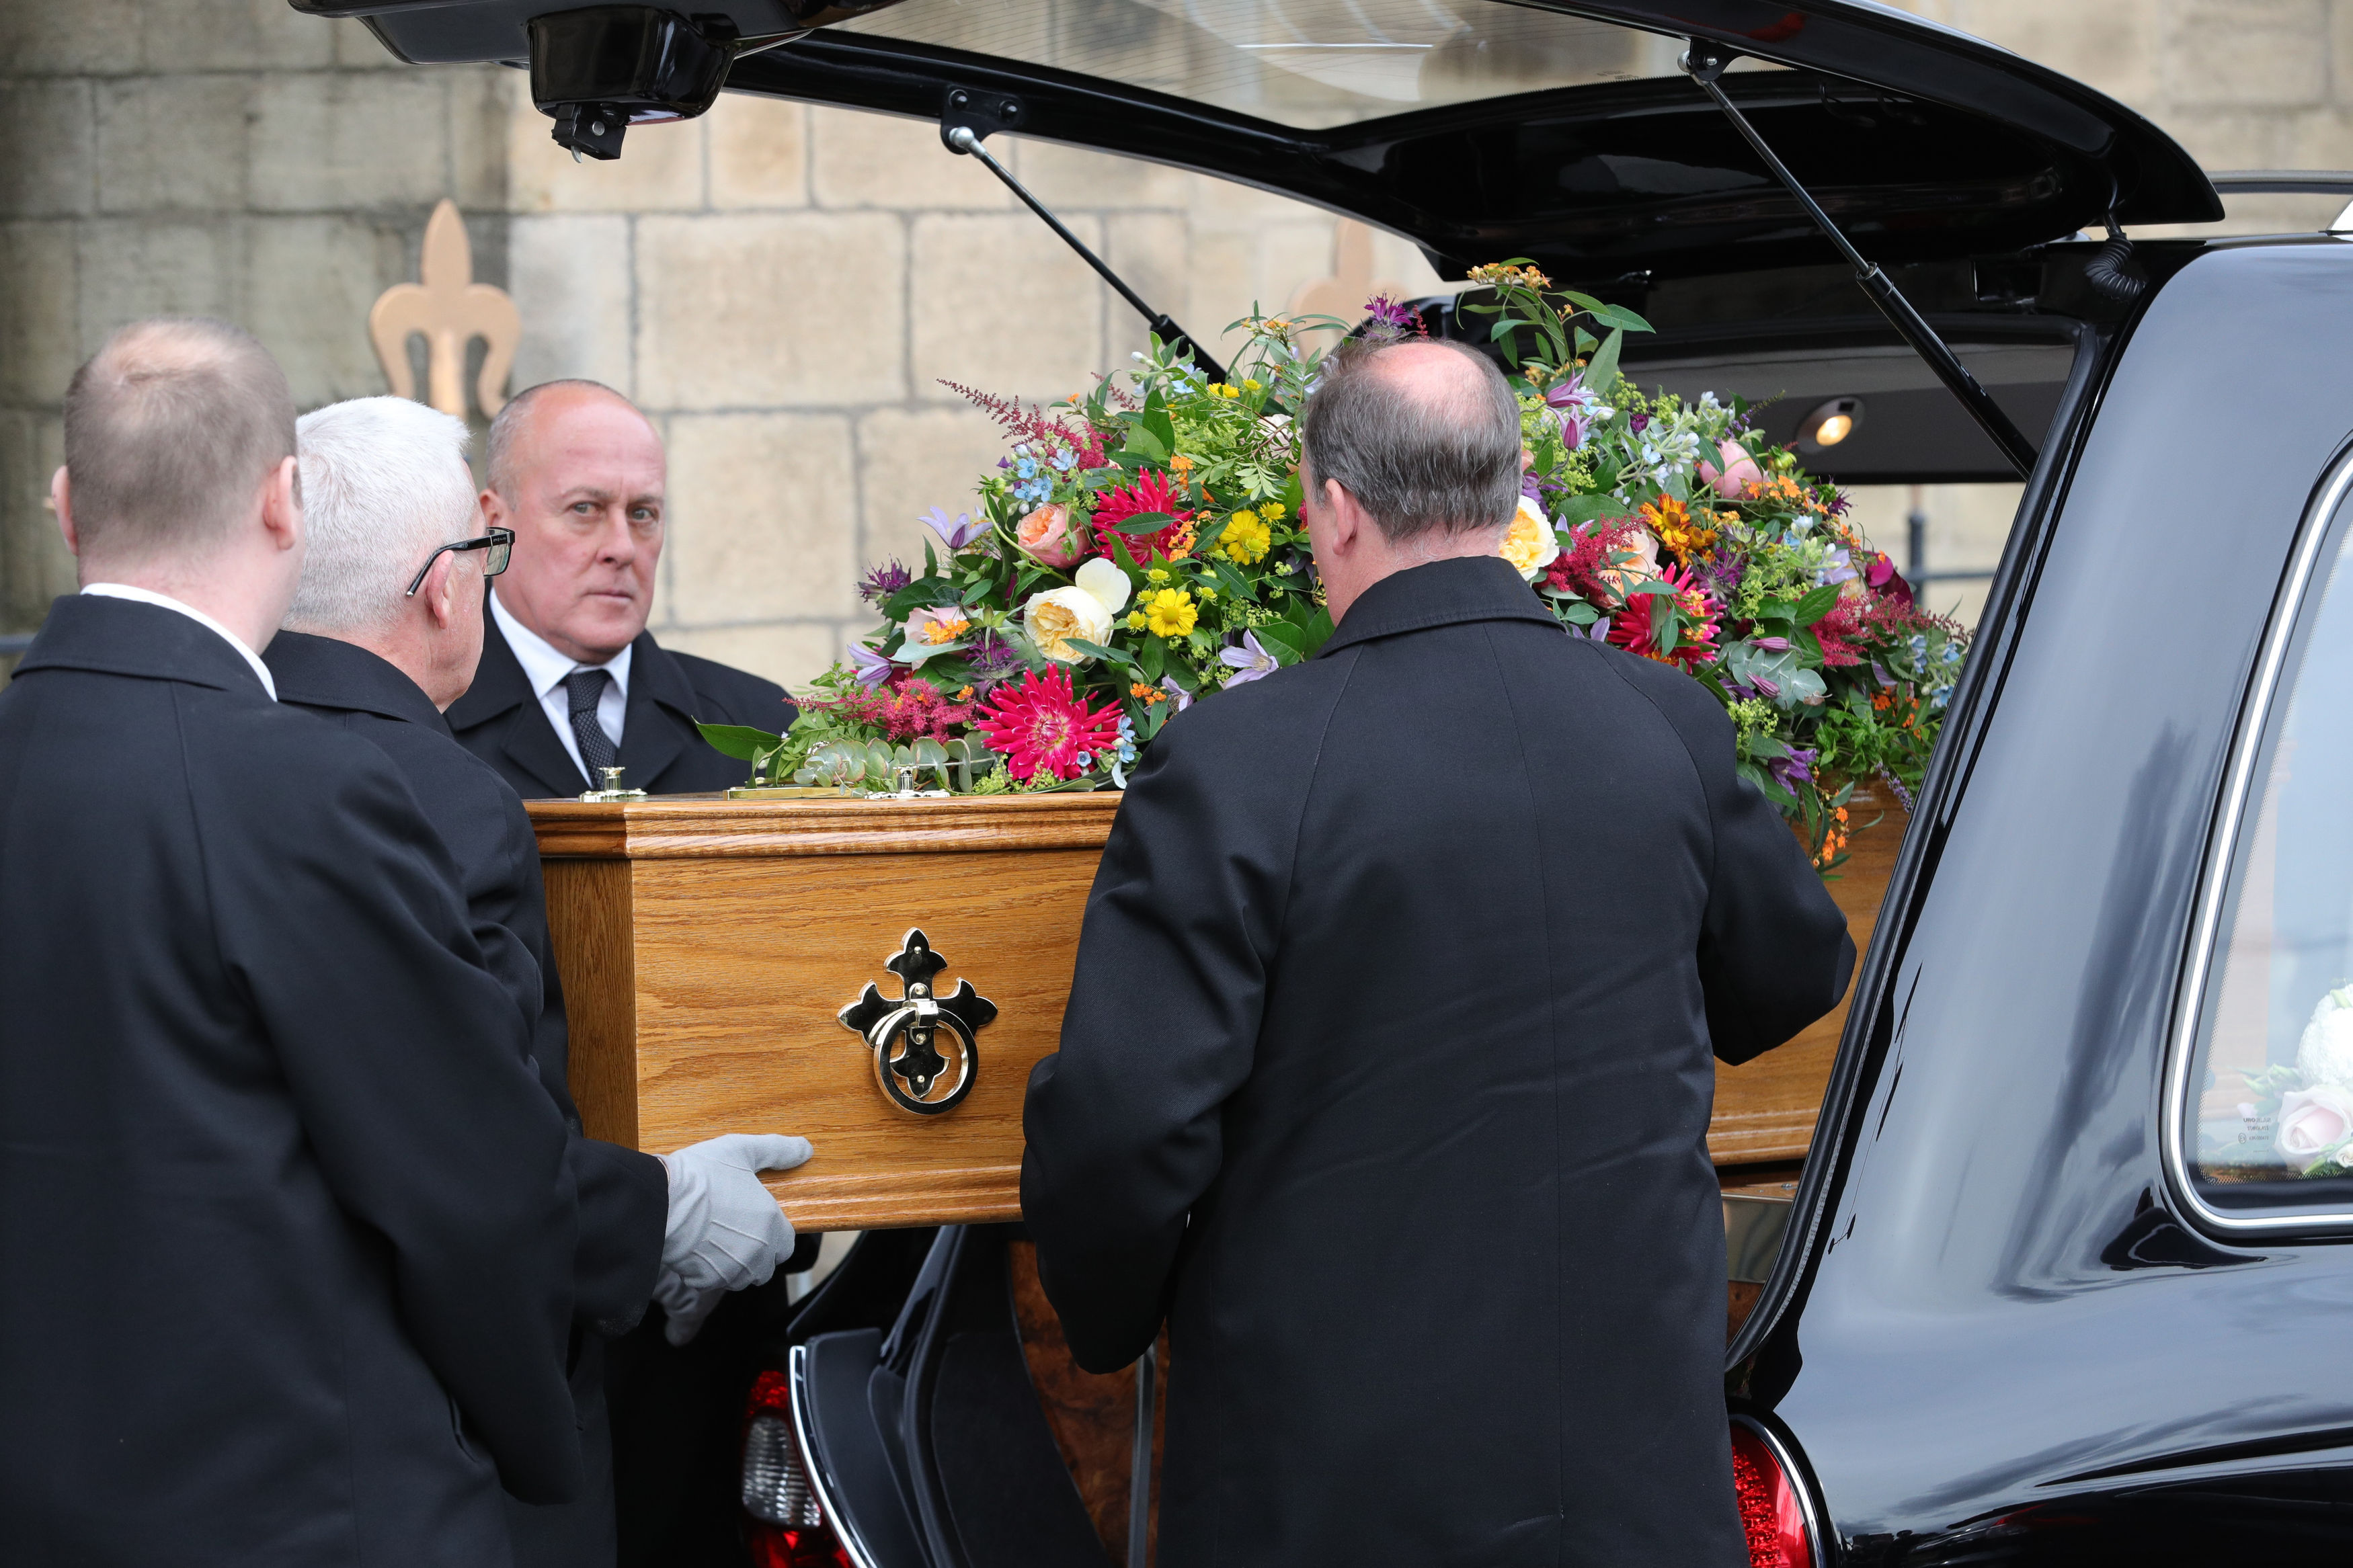 A hearse carrying the coffin of Coronation Street actress Liz Dawn, arrives at Salford Cathedral for her funeral service